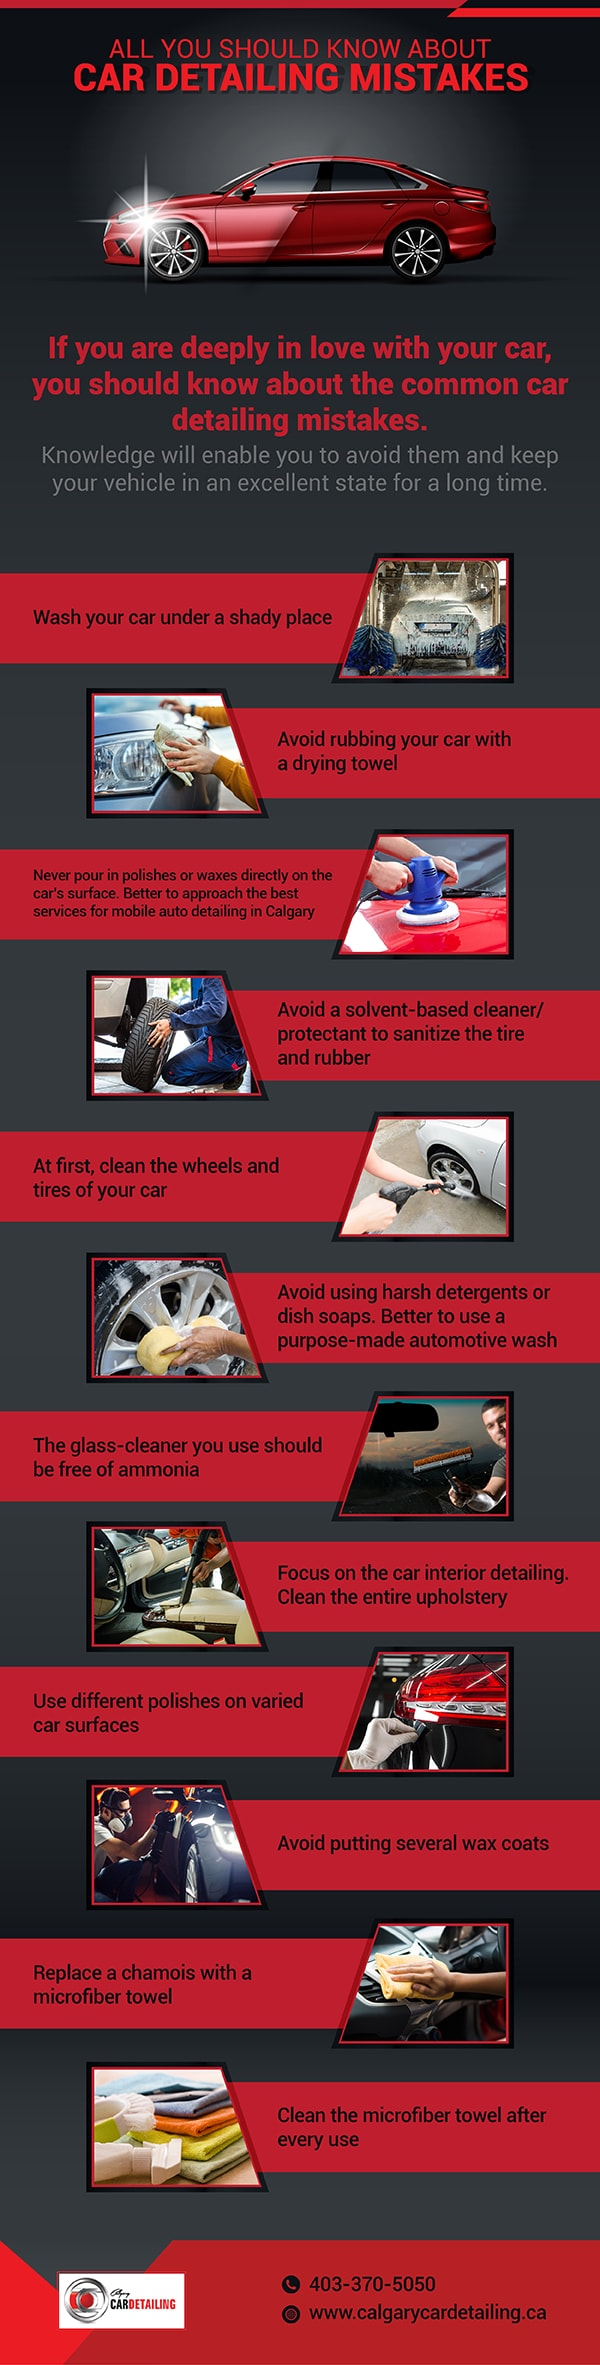 Car Detailing Mistakes